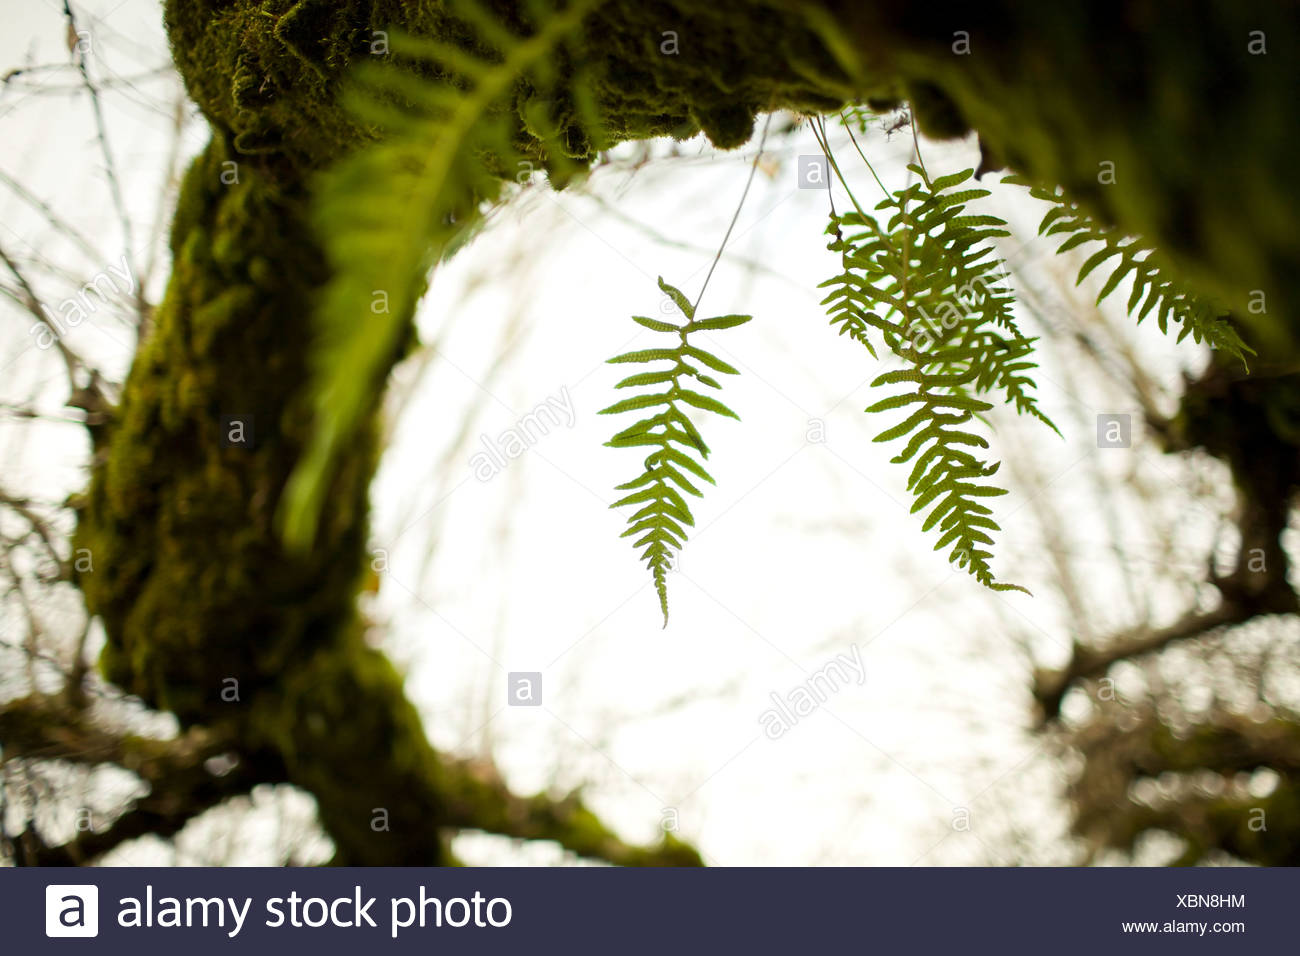 Green moss and fern on tree Stock Photo